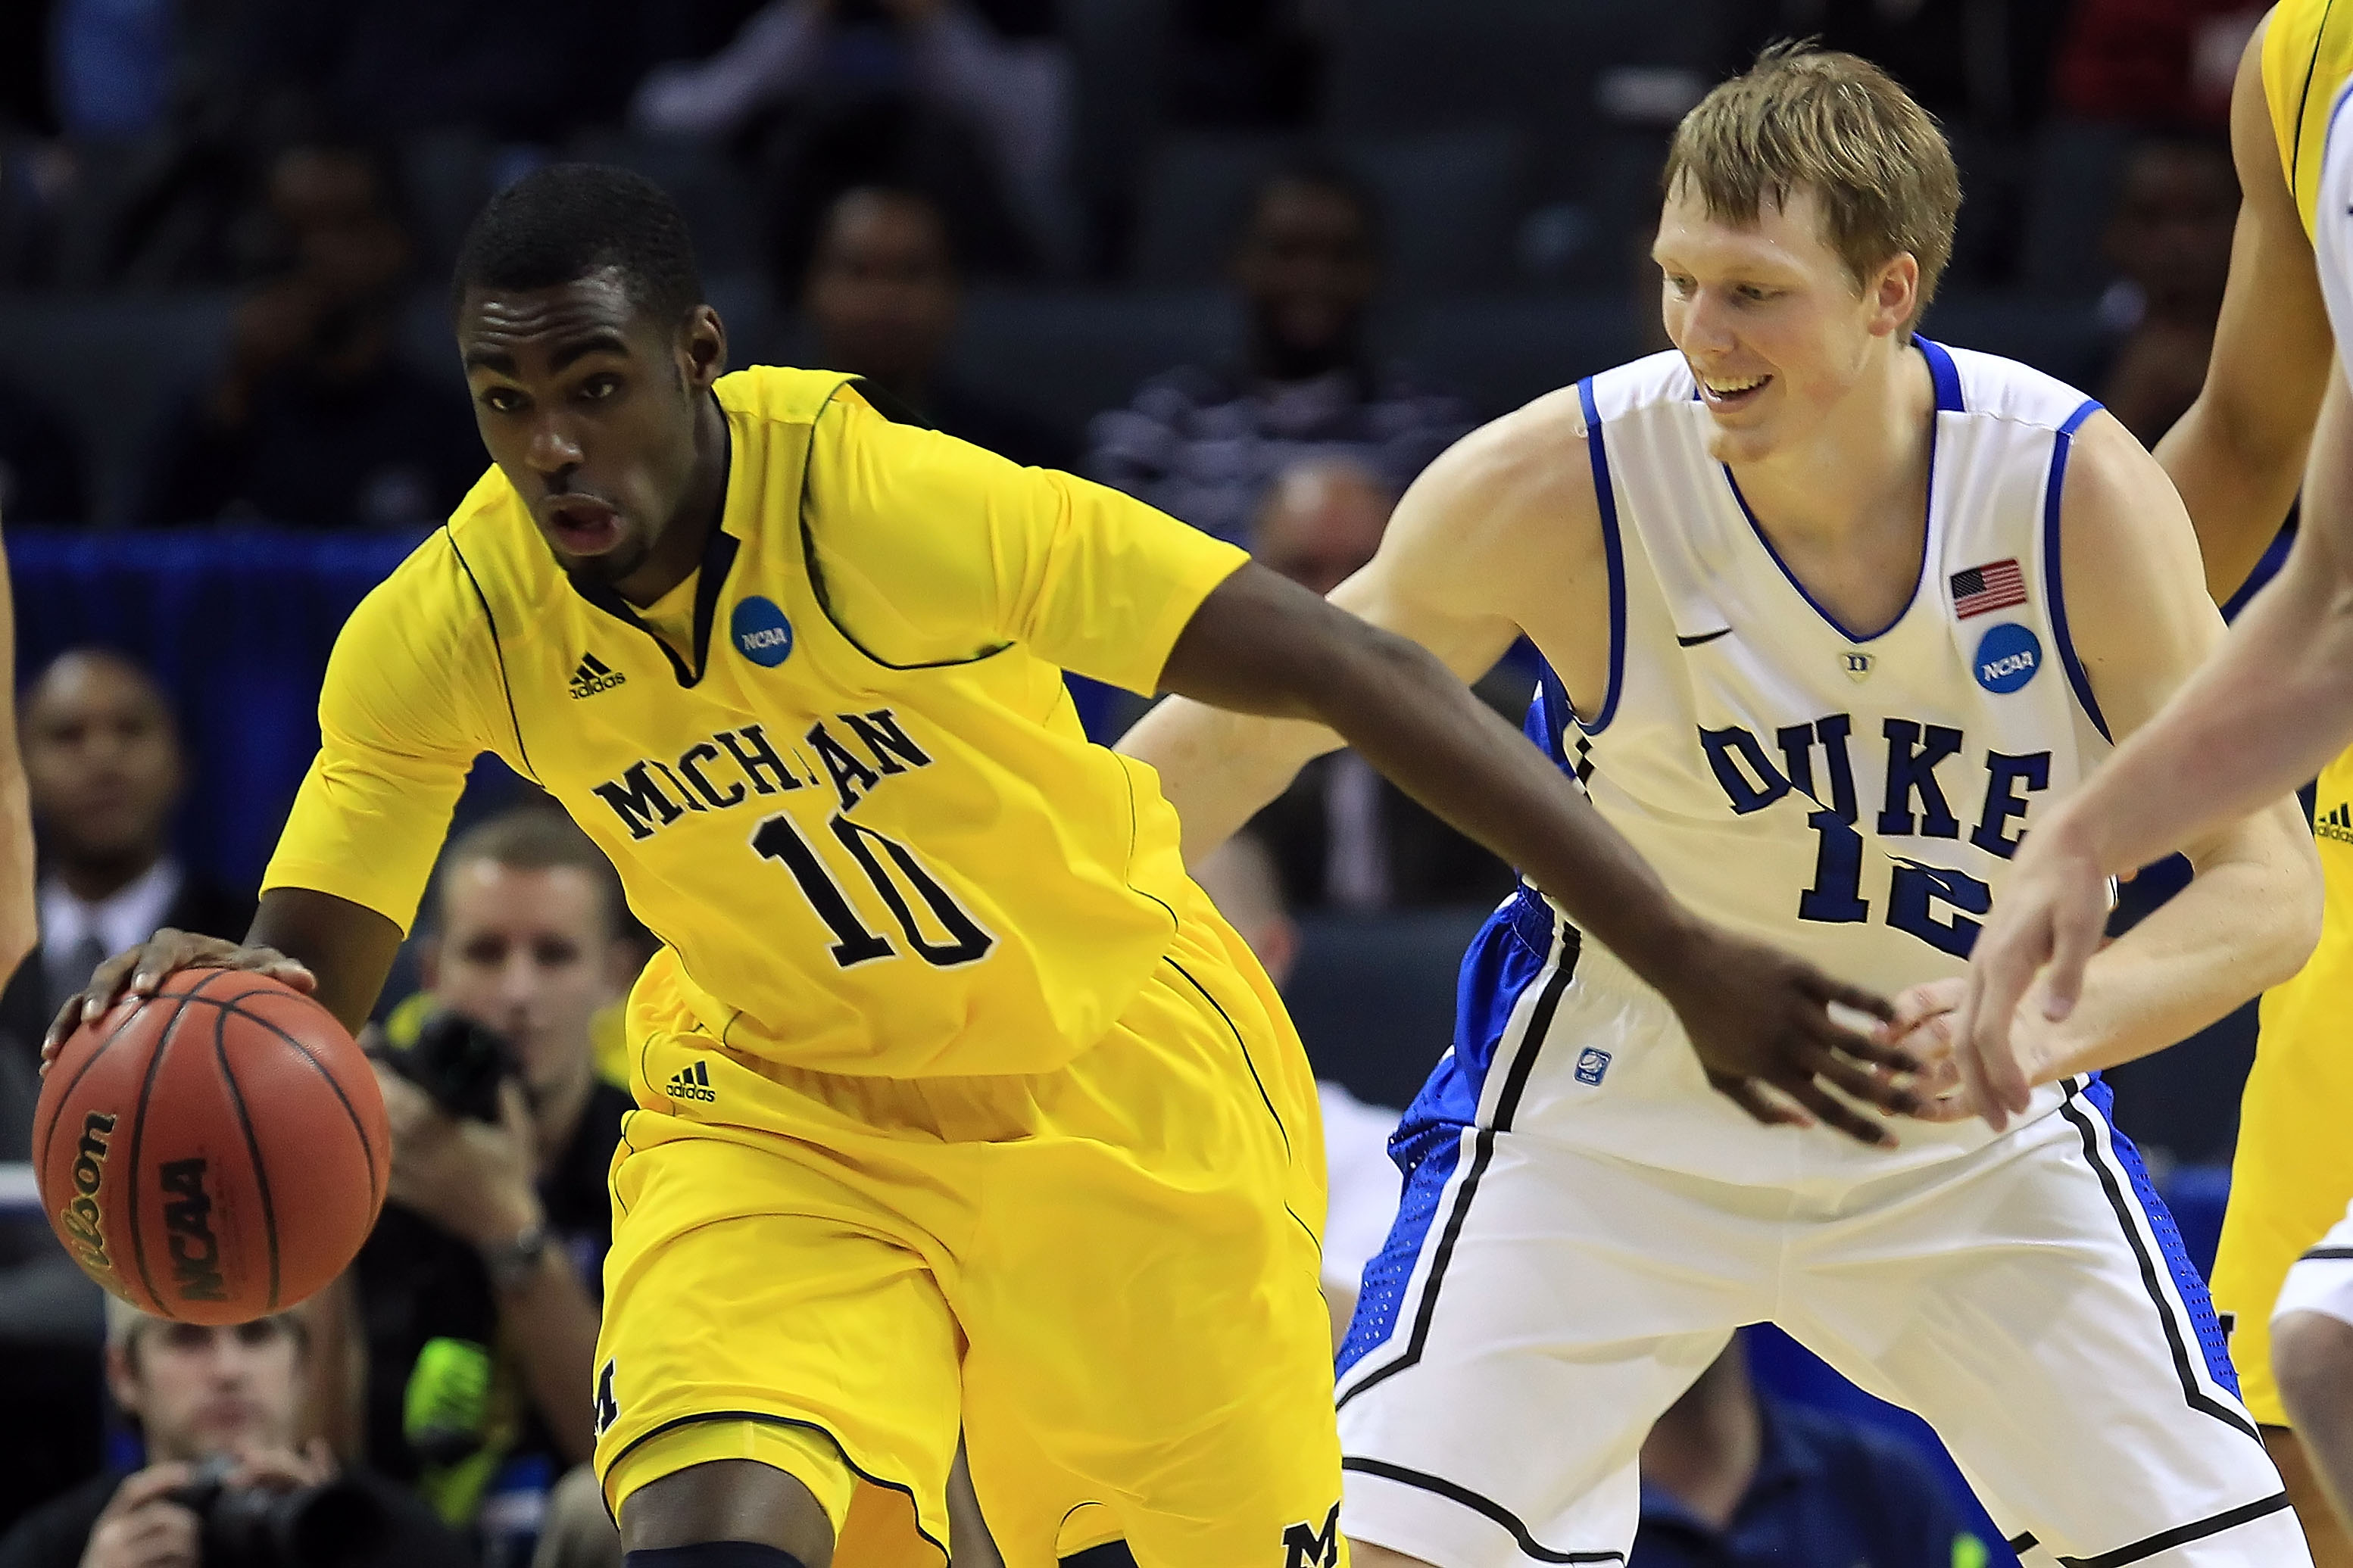 CHARLOTTE, NC - MARCH 20:  Tim Hardaway Jr. #10 of the Michigan Wolverines moves the ball against Kyle Singler #12 of the Duke Blue Devils in the first half during the third round of the 2011 NCAA men's basketball tournament at Time Warner Cable Arena on